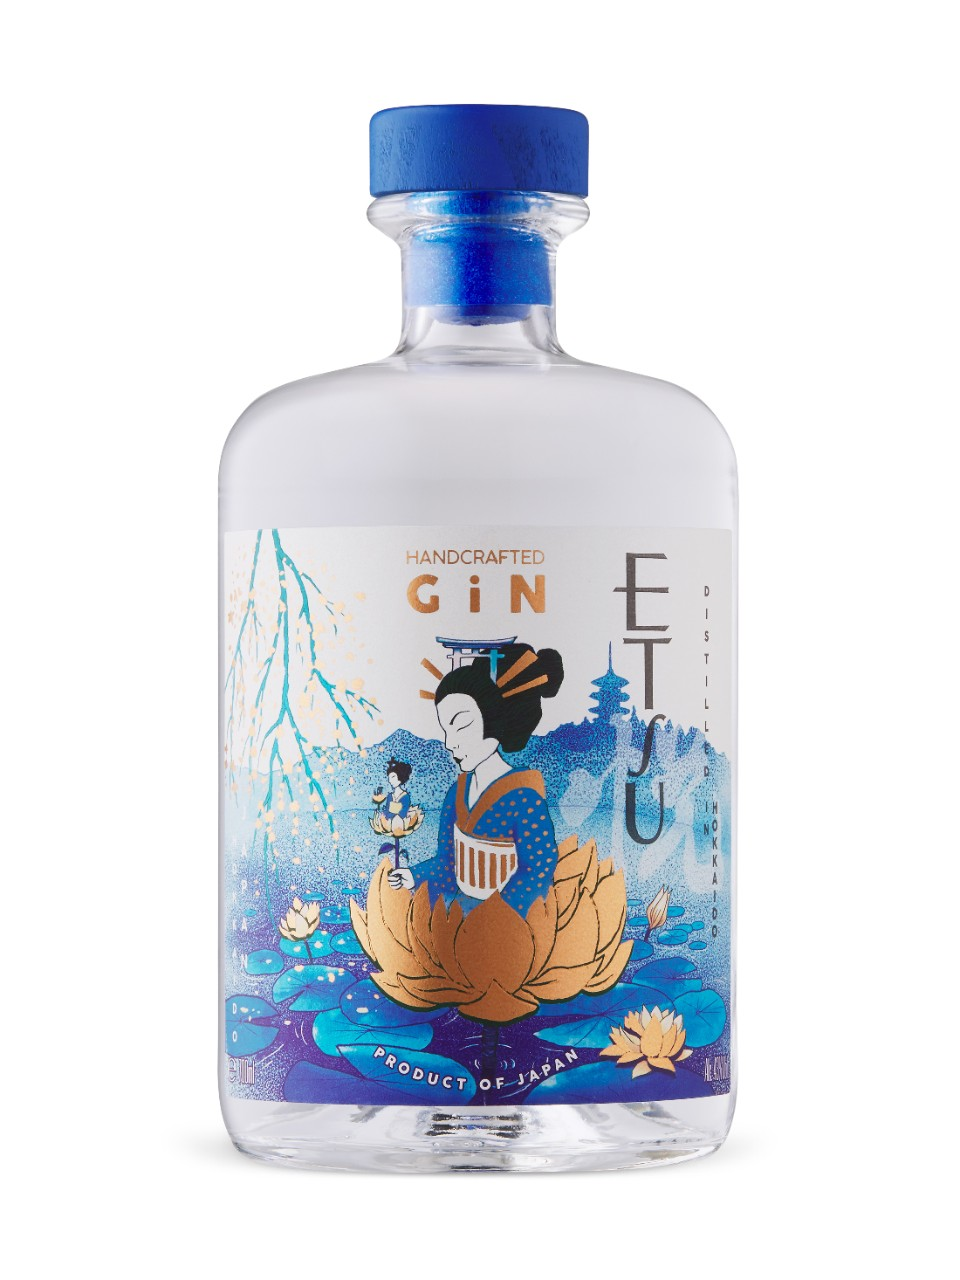 Etsu Gin from LCBO